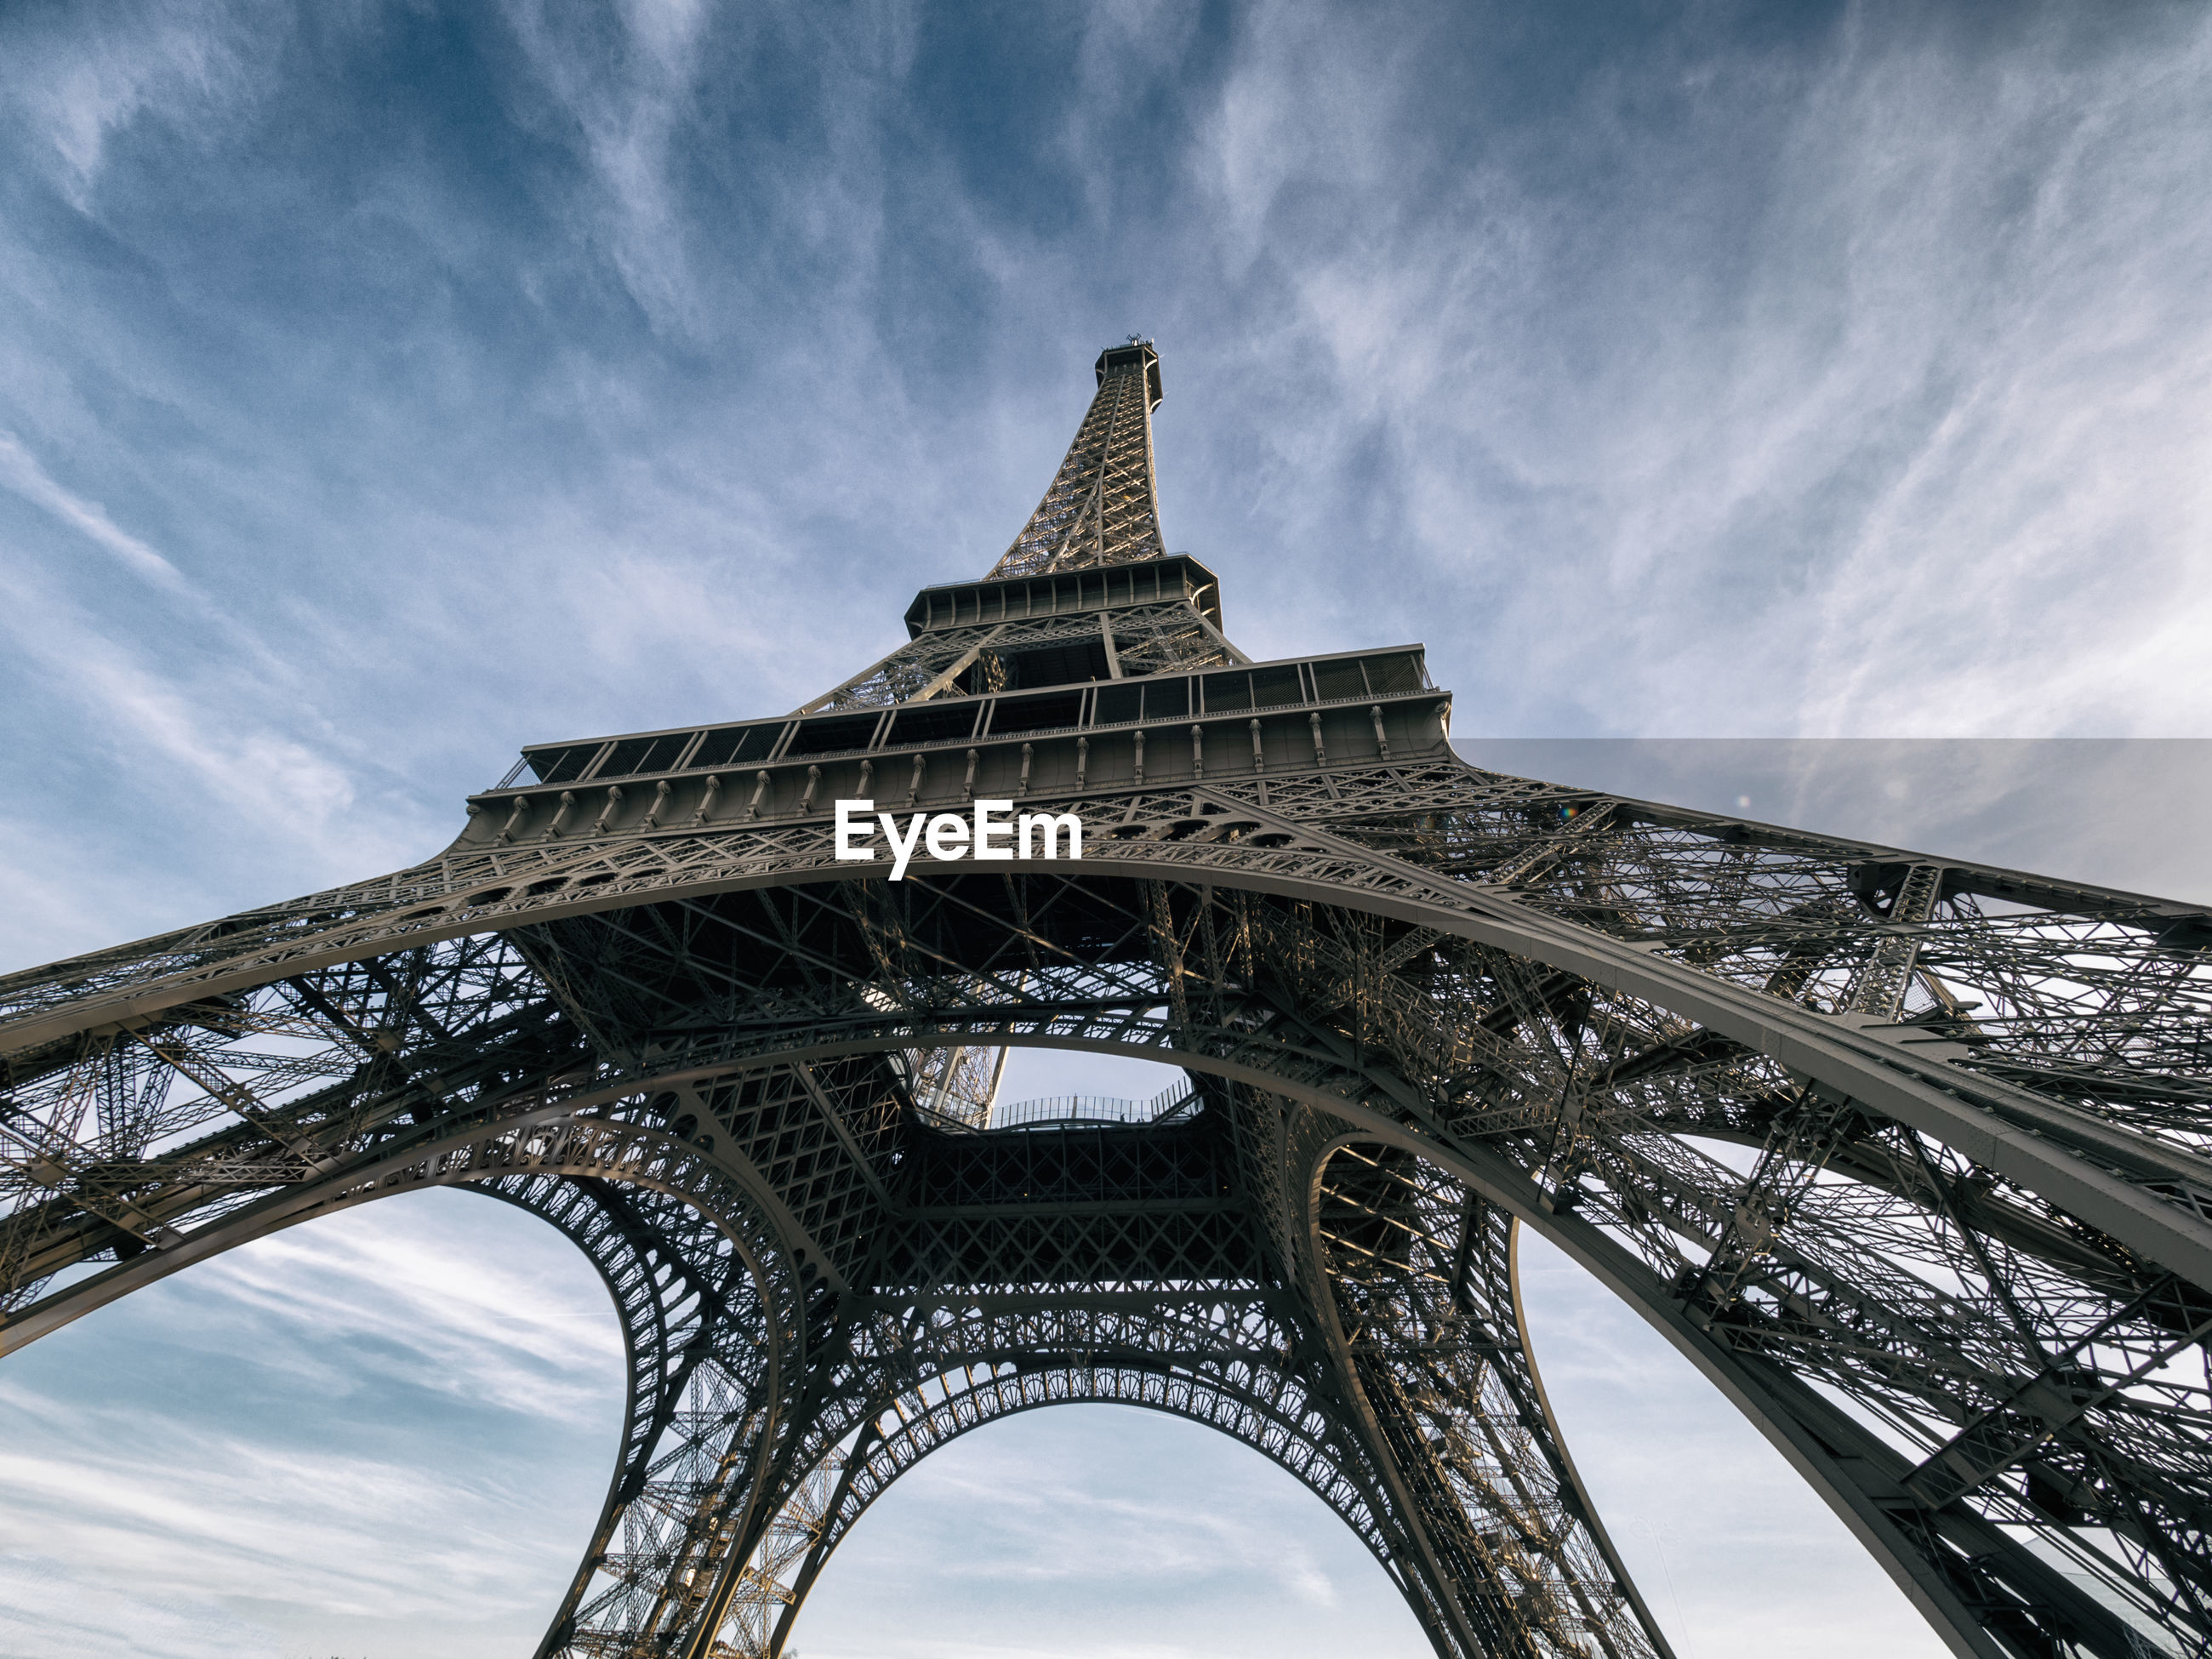 LOW ANGLE VIEW OF EIFFEL TOWER WITH EIFFEL TOWER